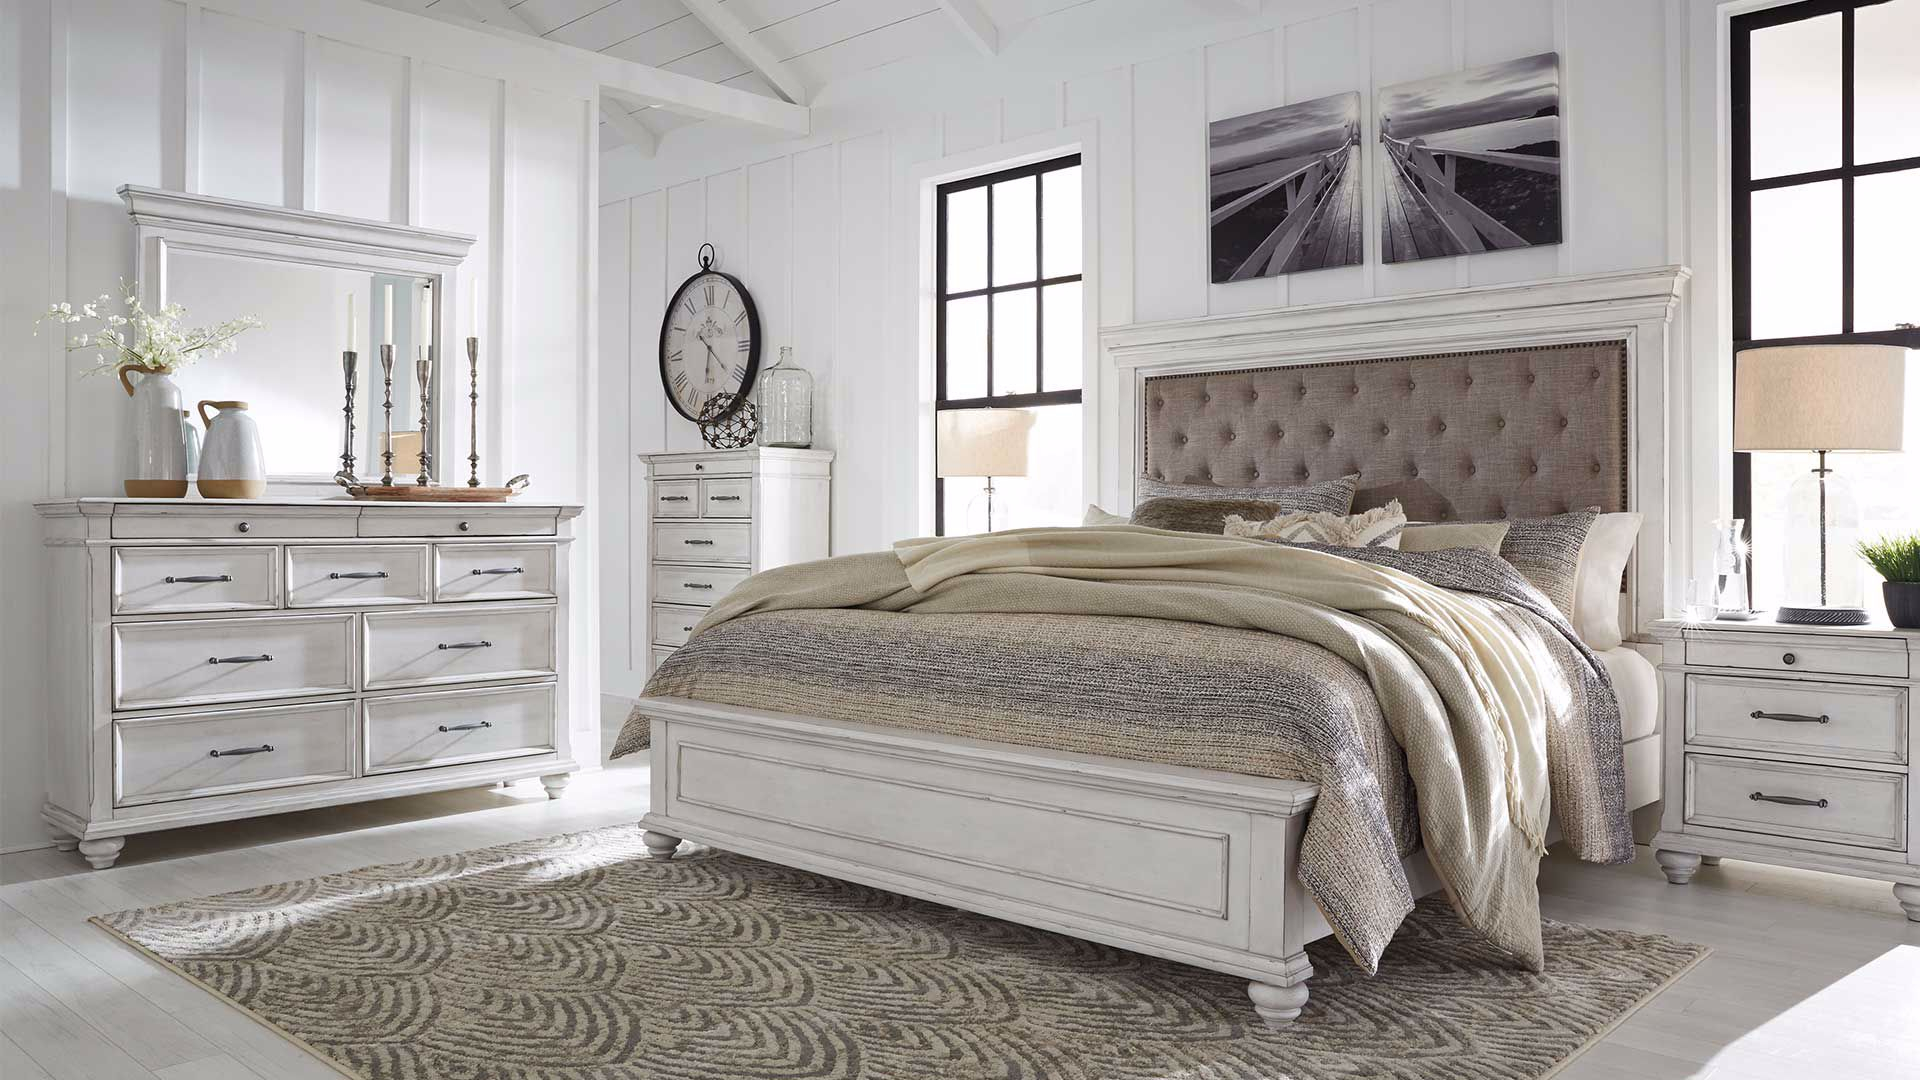 Inspirierend Bedroom And Living Room Sets Large Setups White intended for 11 Clever Tricks of How to Build Bedroom And Living Room Sets